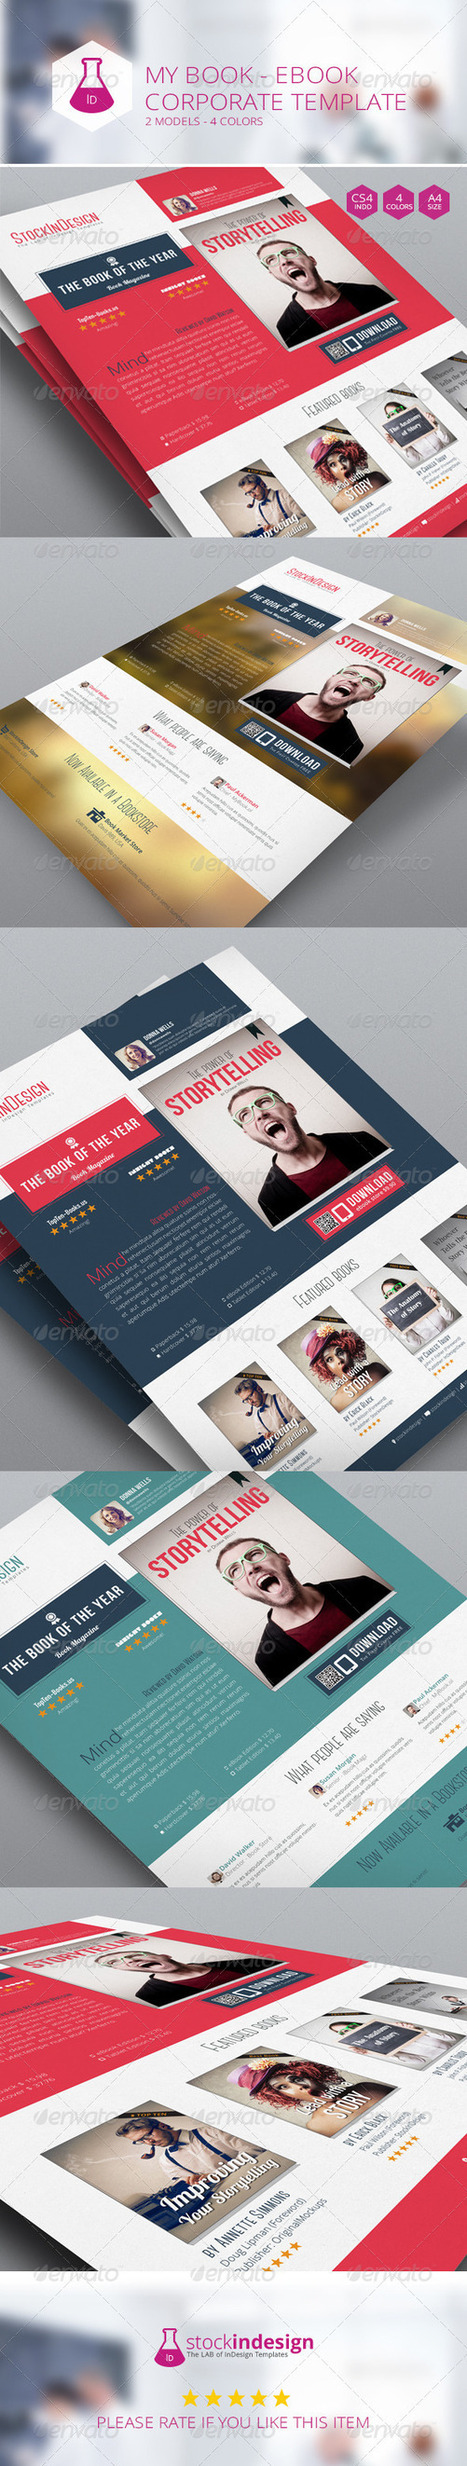 My Book Ebook Promotion - Flat Design (Corporate) | Something about Flat Design | Scoop.it